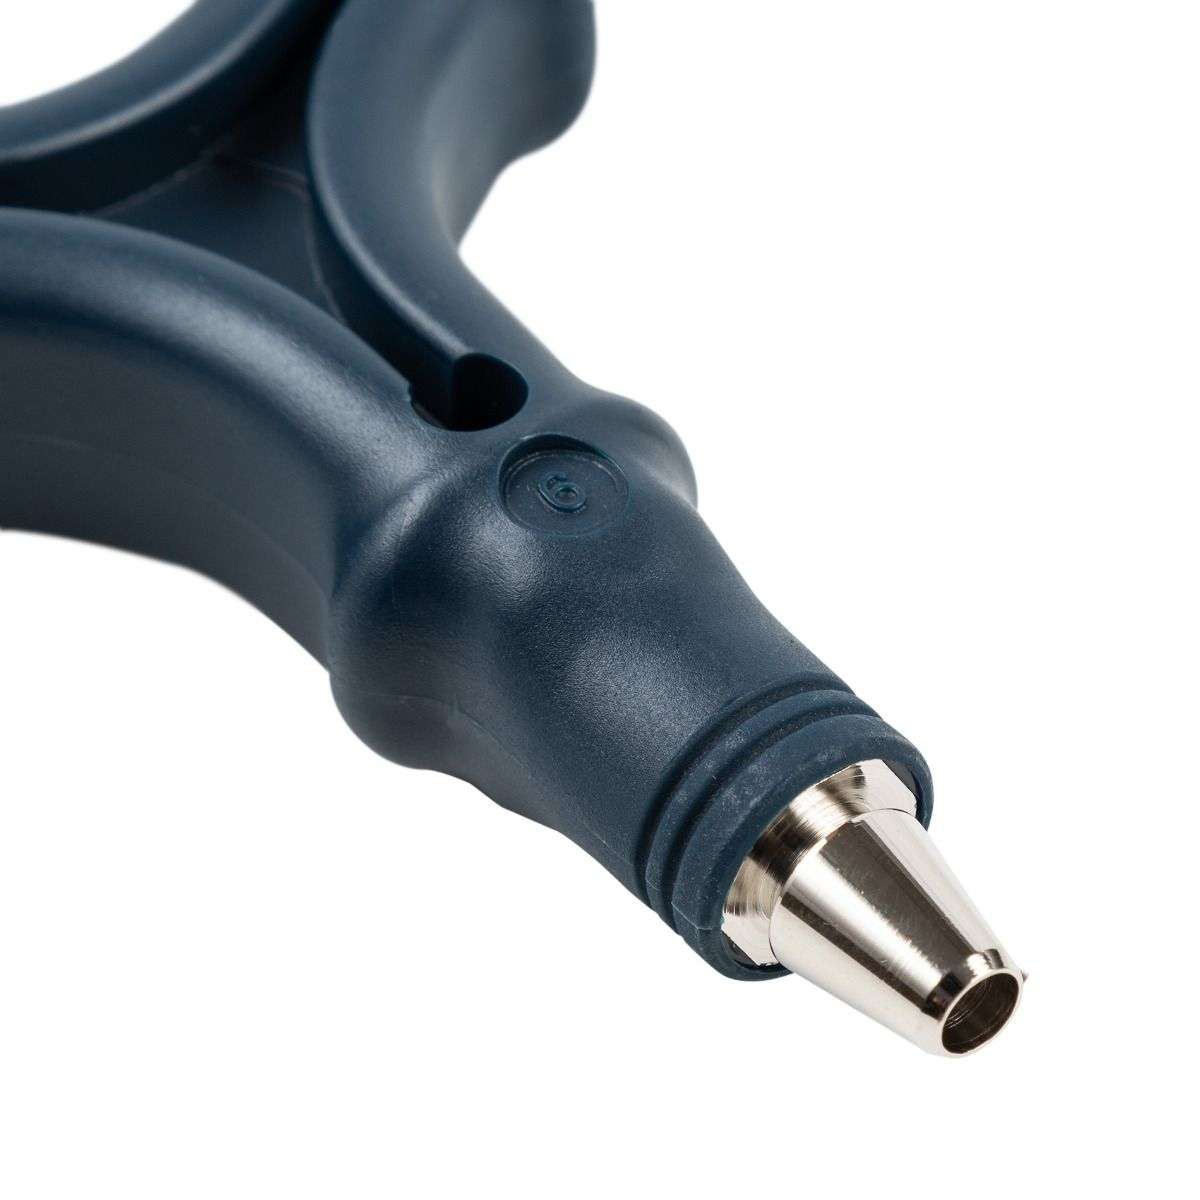 Advanced 3-in-1 Coax Flaring Tool